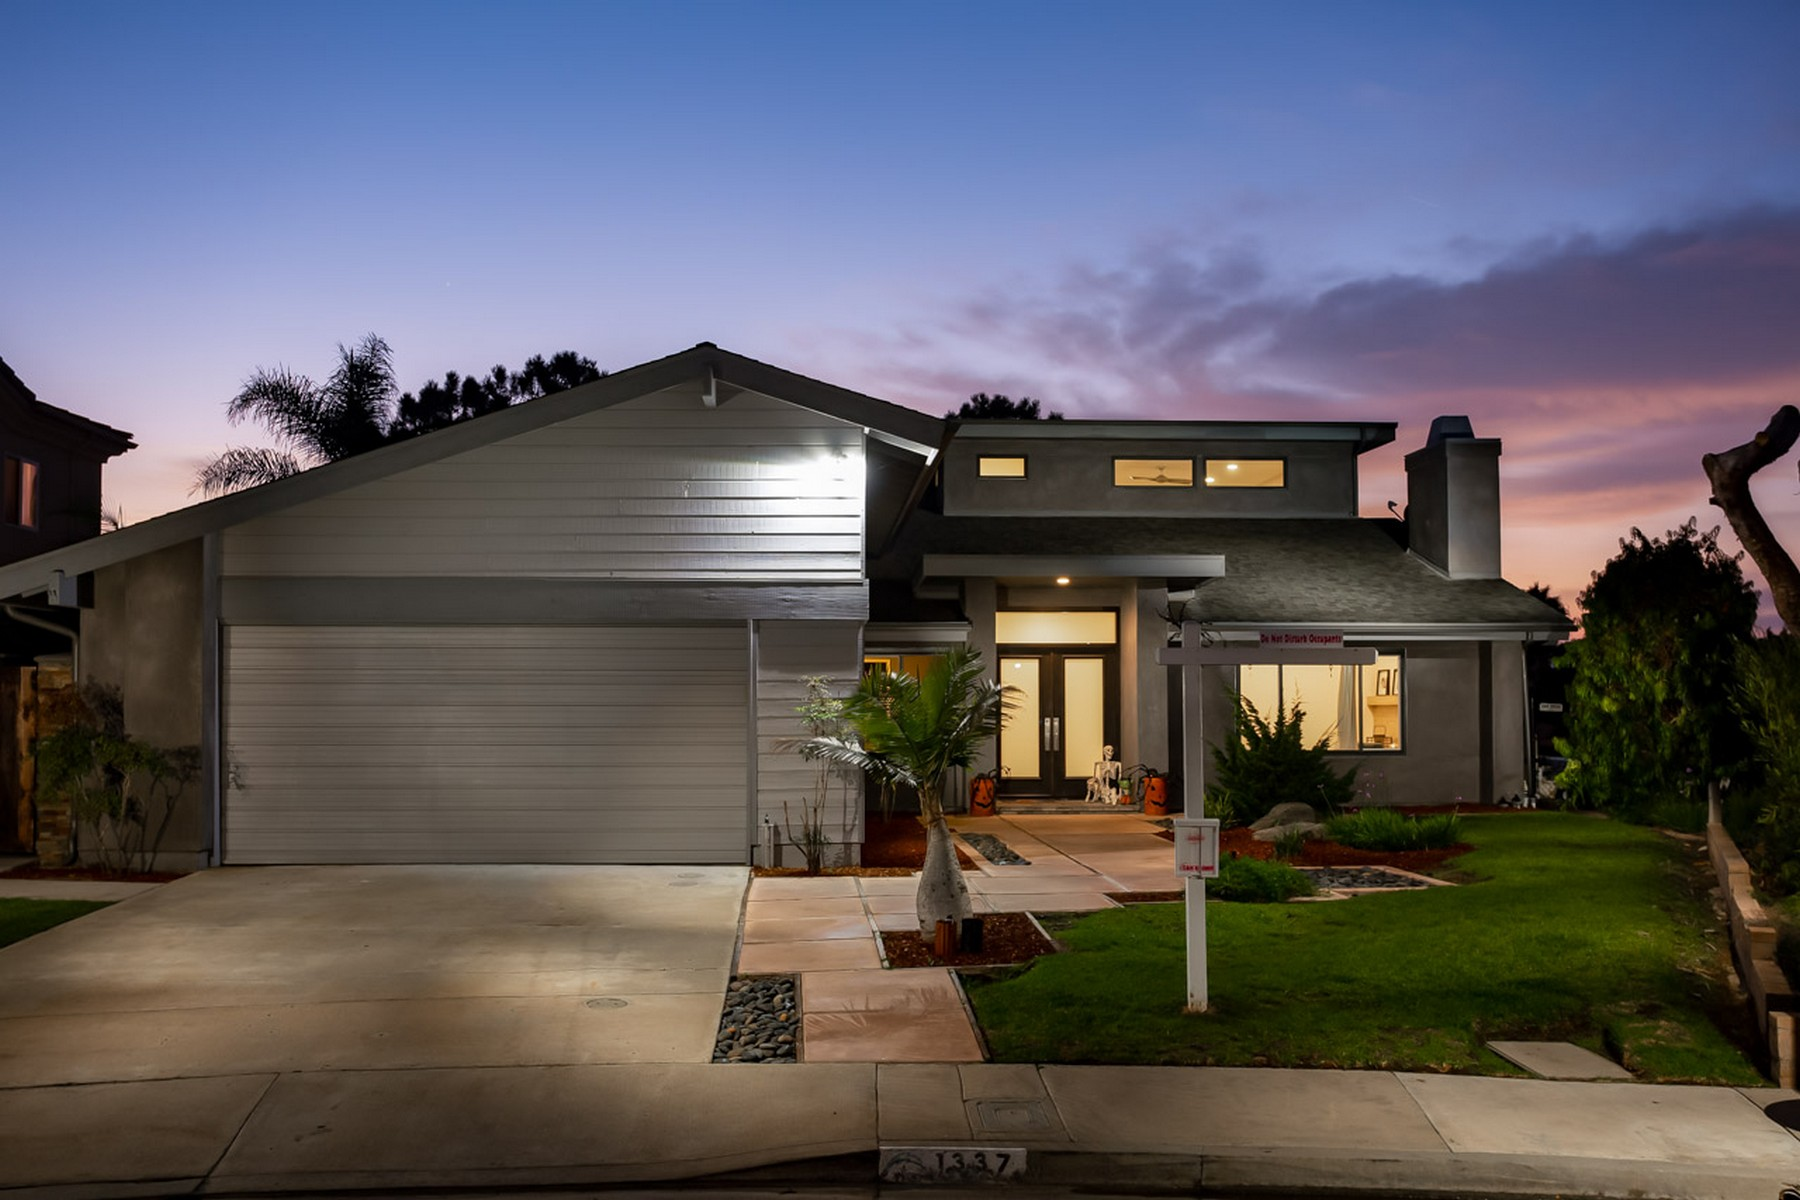 Single Family Home for Active at 1337 Sea Village Drive 1337 Sea Village Drive Cardiff By The Sea, California 92007 United States